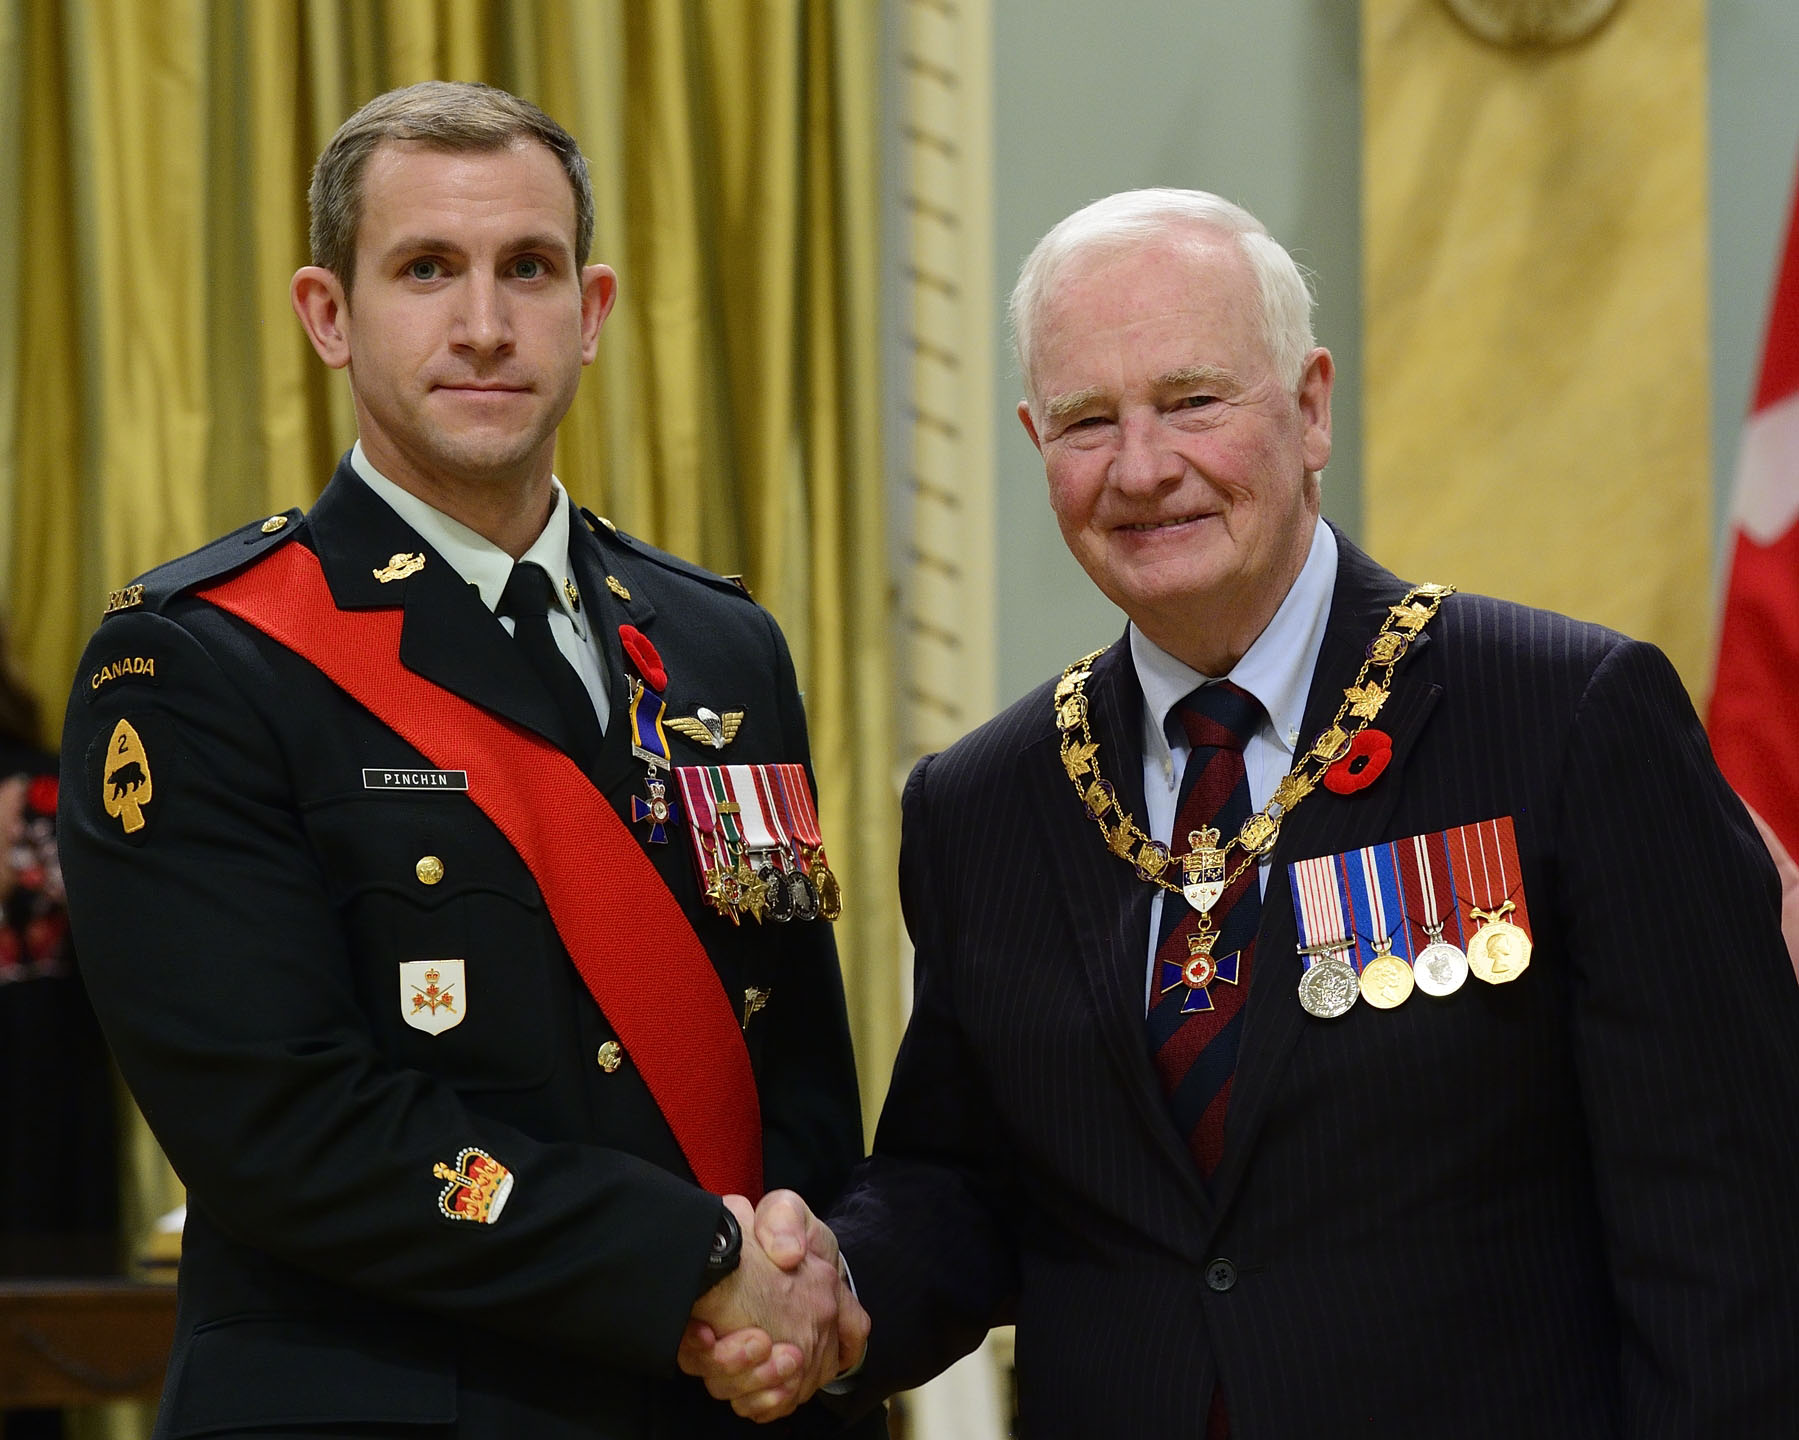 His Excellency presented the Order of Military Merit at the Member level (M.M.M.) to Sergeant Jeremy Pinchin, M.M.M., S.M.V., C.D., 3rd Battalion, Royal Canadian Regiment, Petawawa, Ontario.